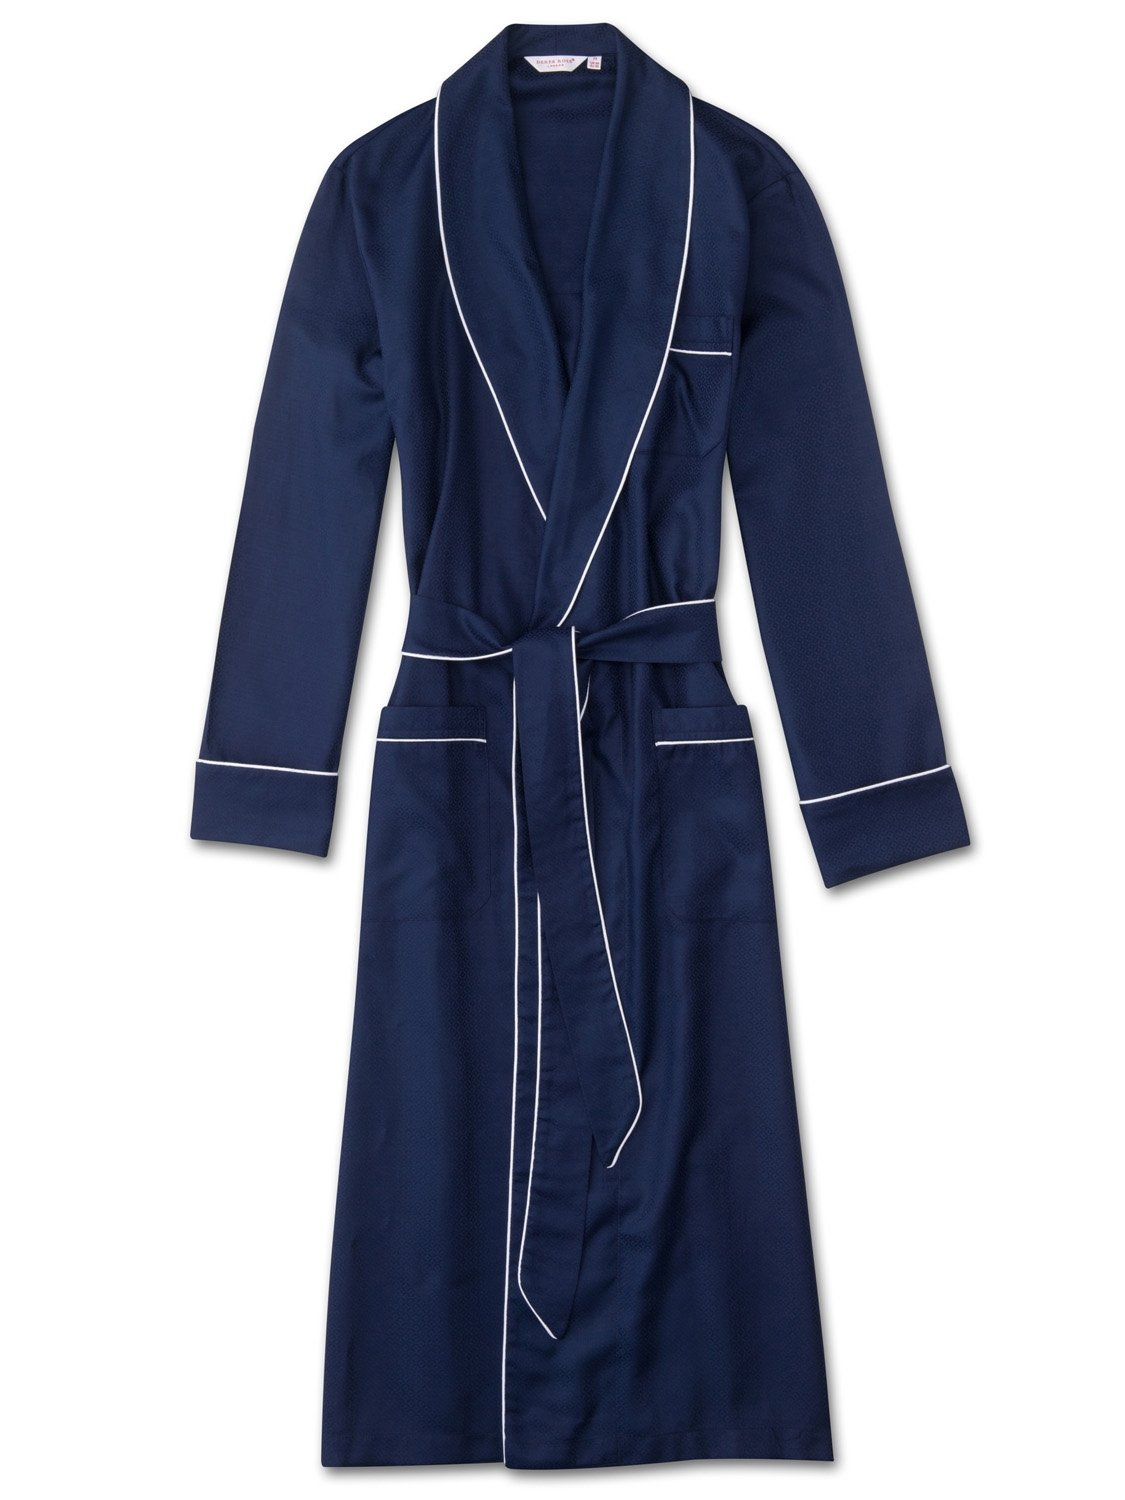 Men's Piped Dressing Gown Lombard 6 Cotton Jacquard Navy